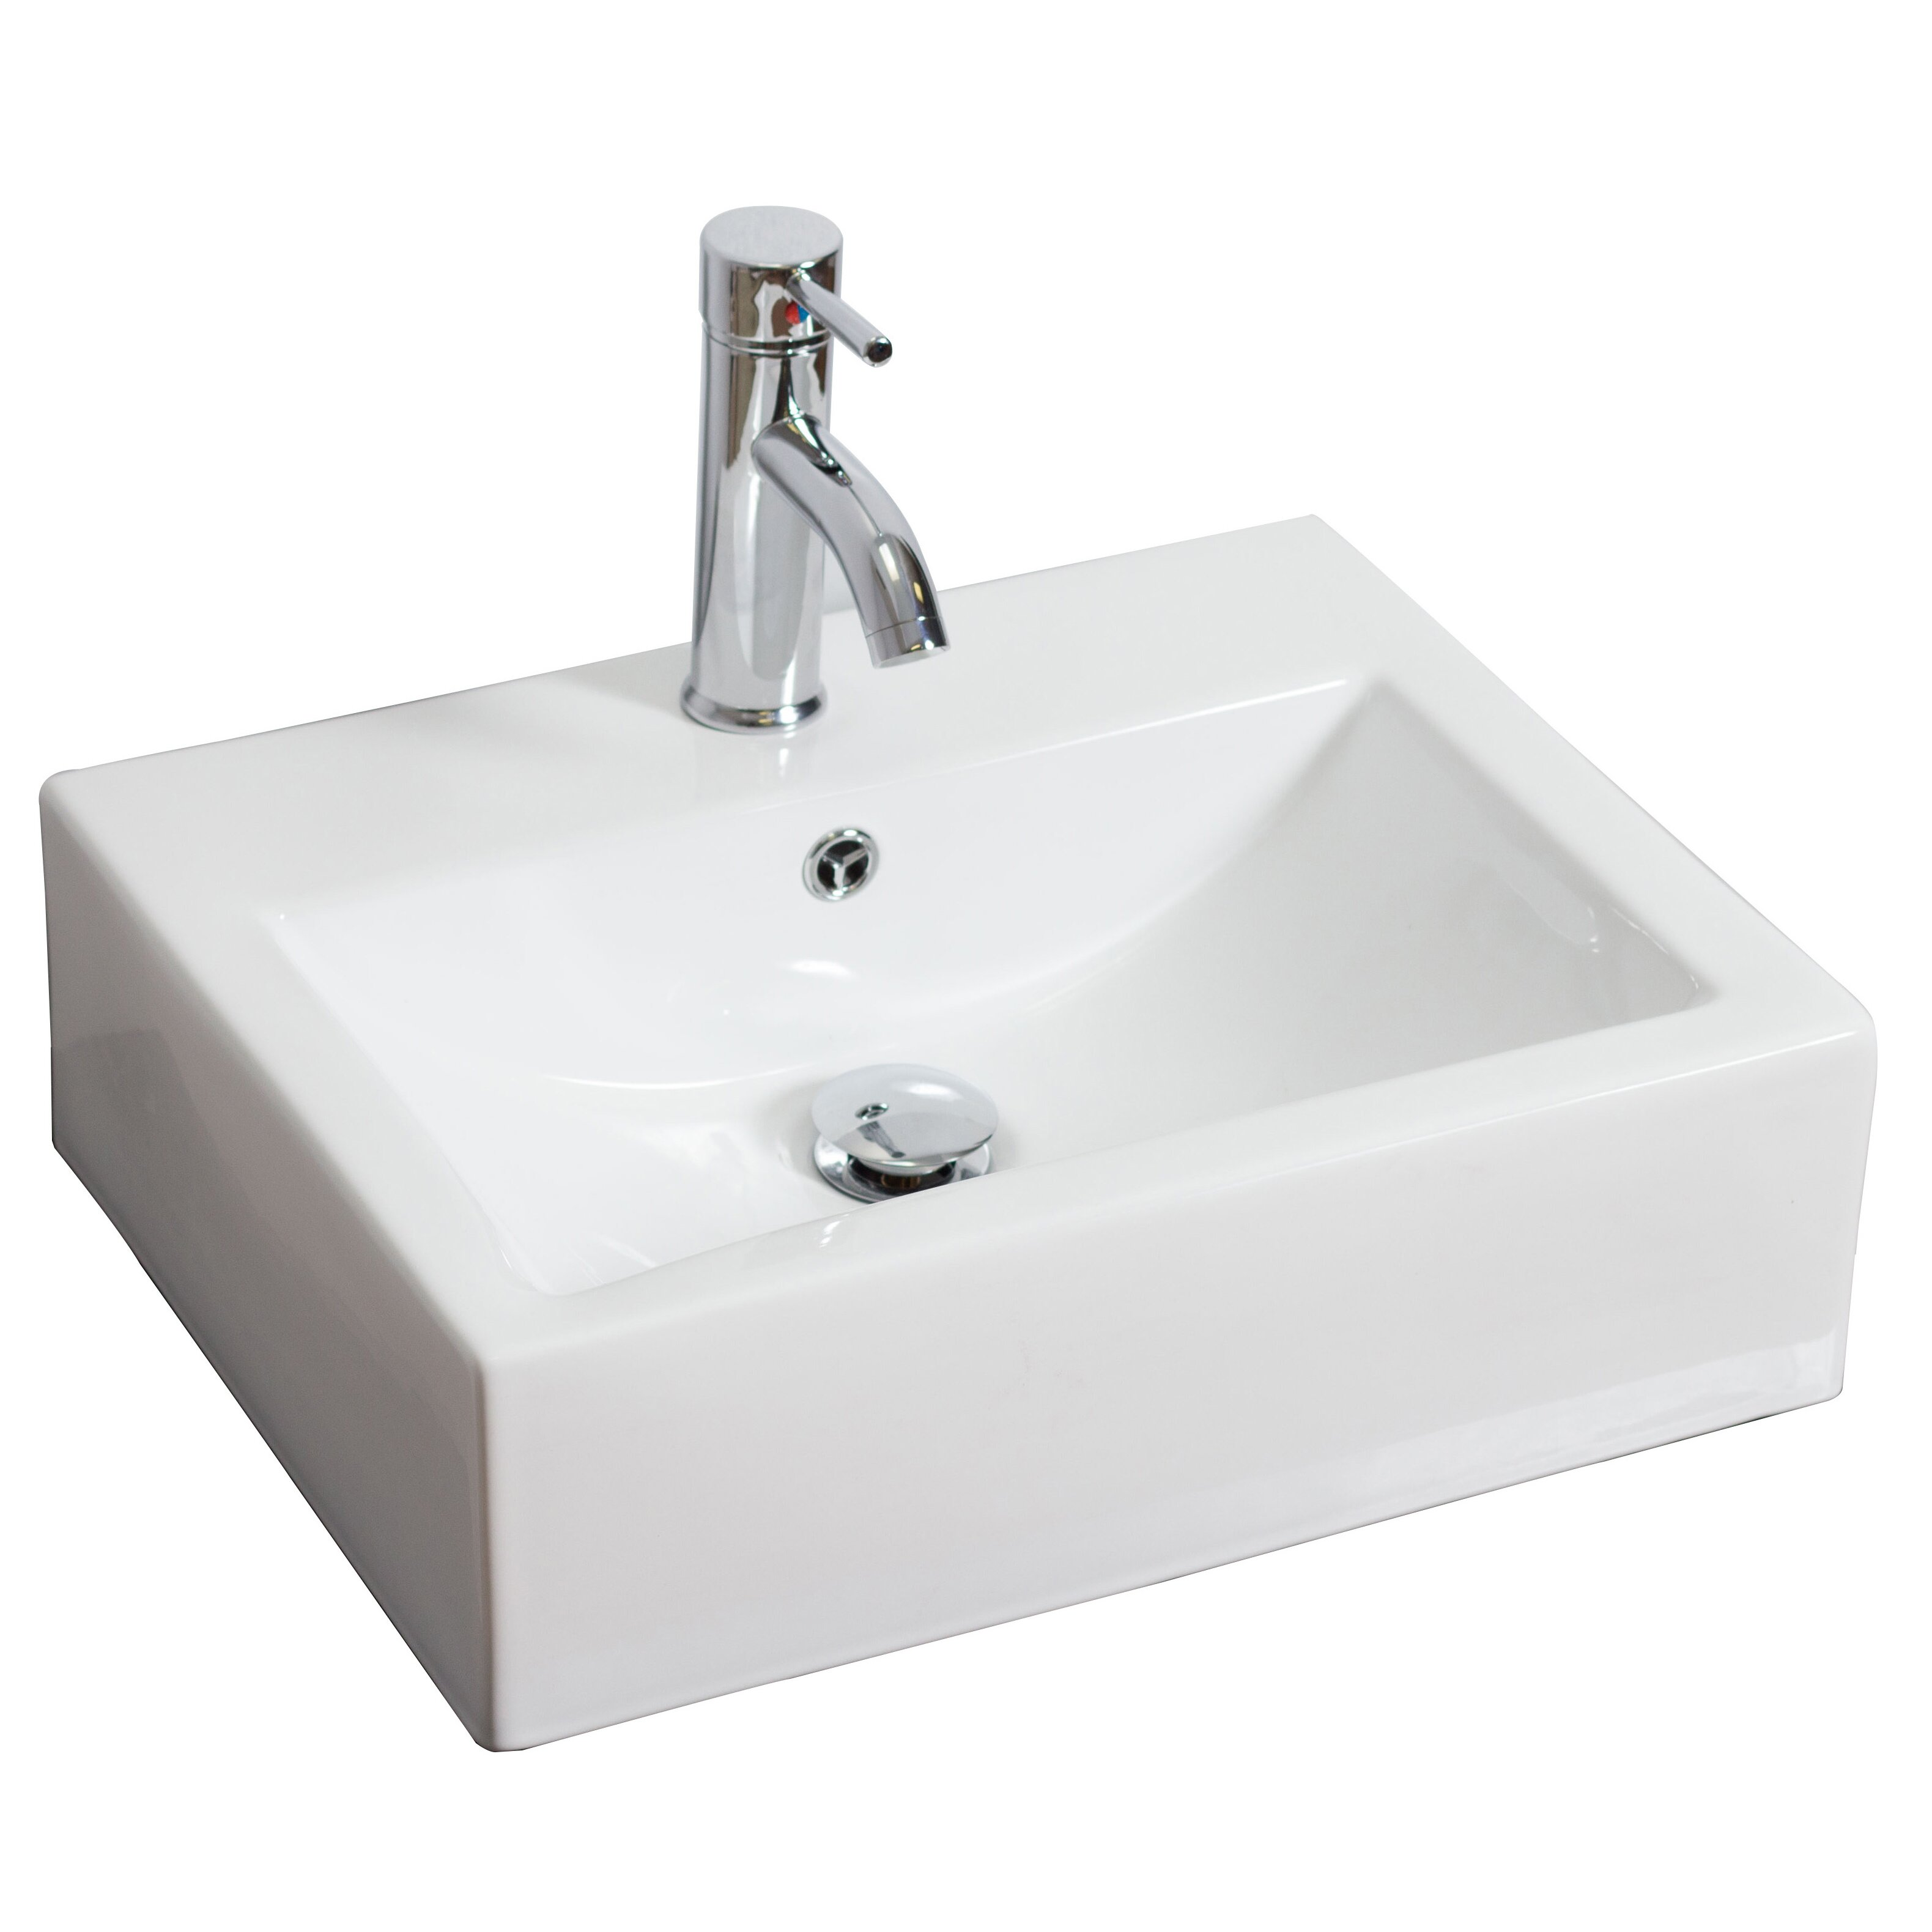 rectangular vessel bathroom sinks american imaginations rectangle vessel bathroom sink 20124